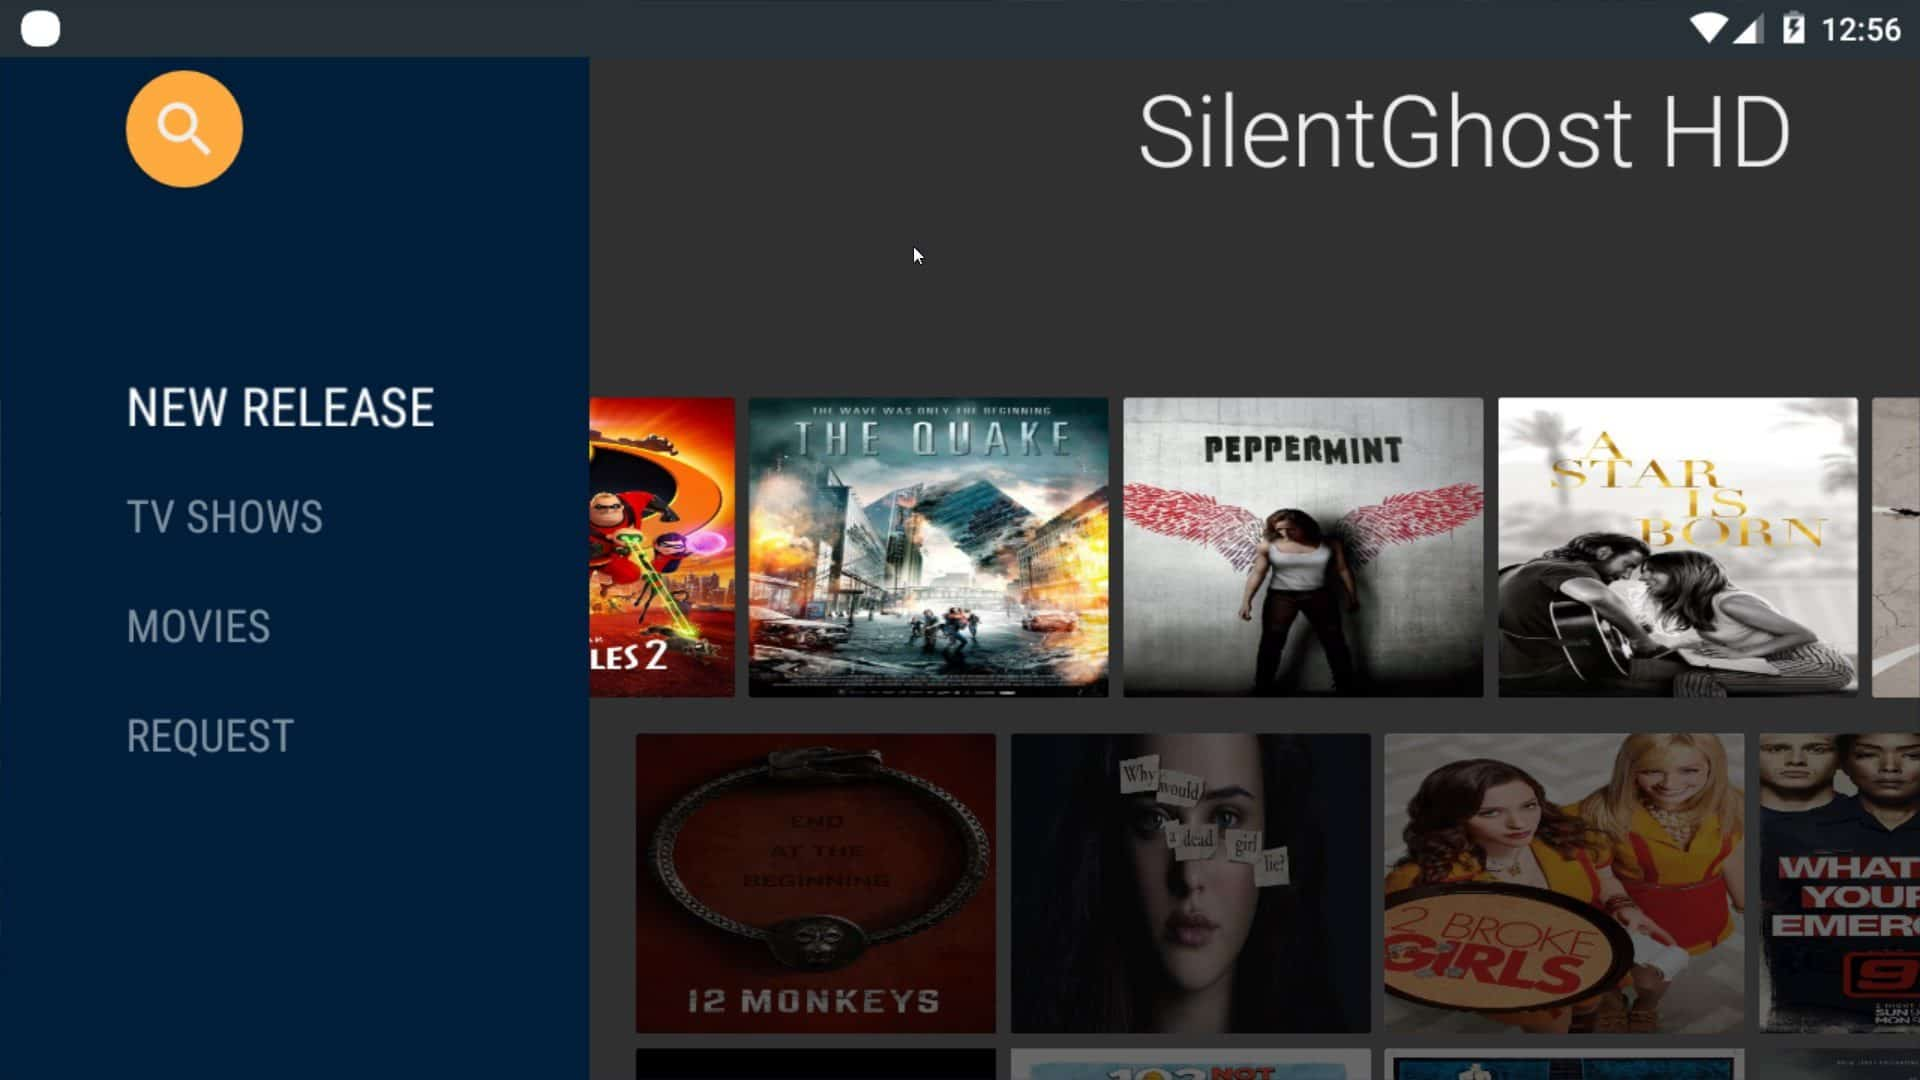 silent ghost hd apk download for android